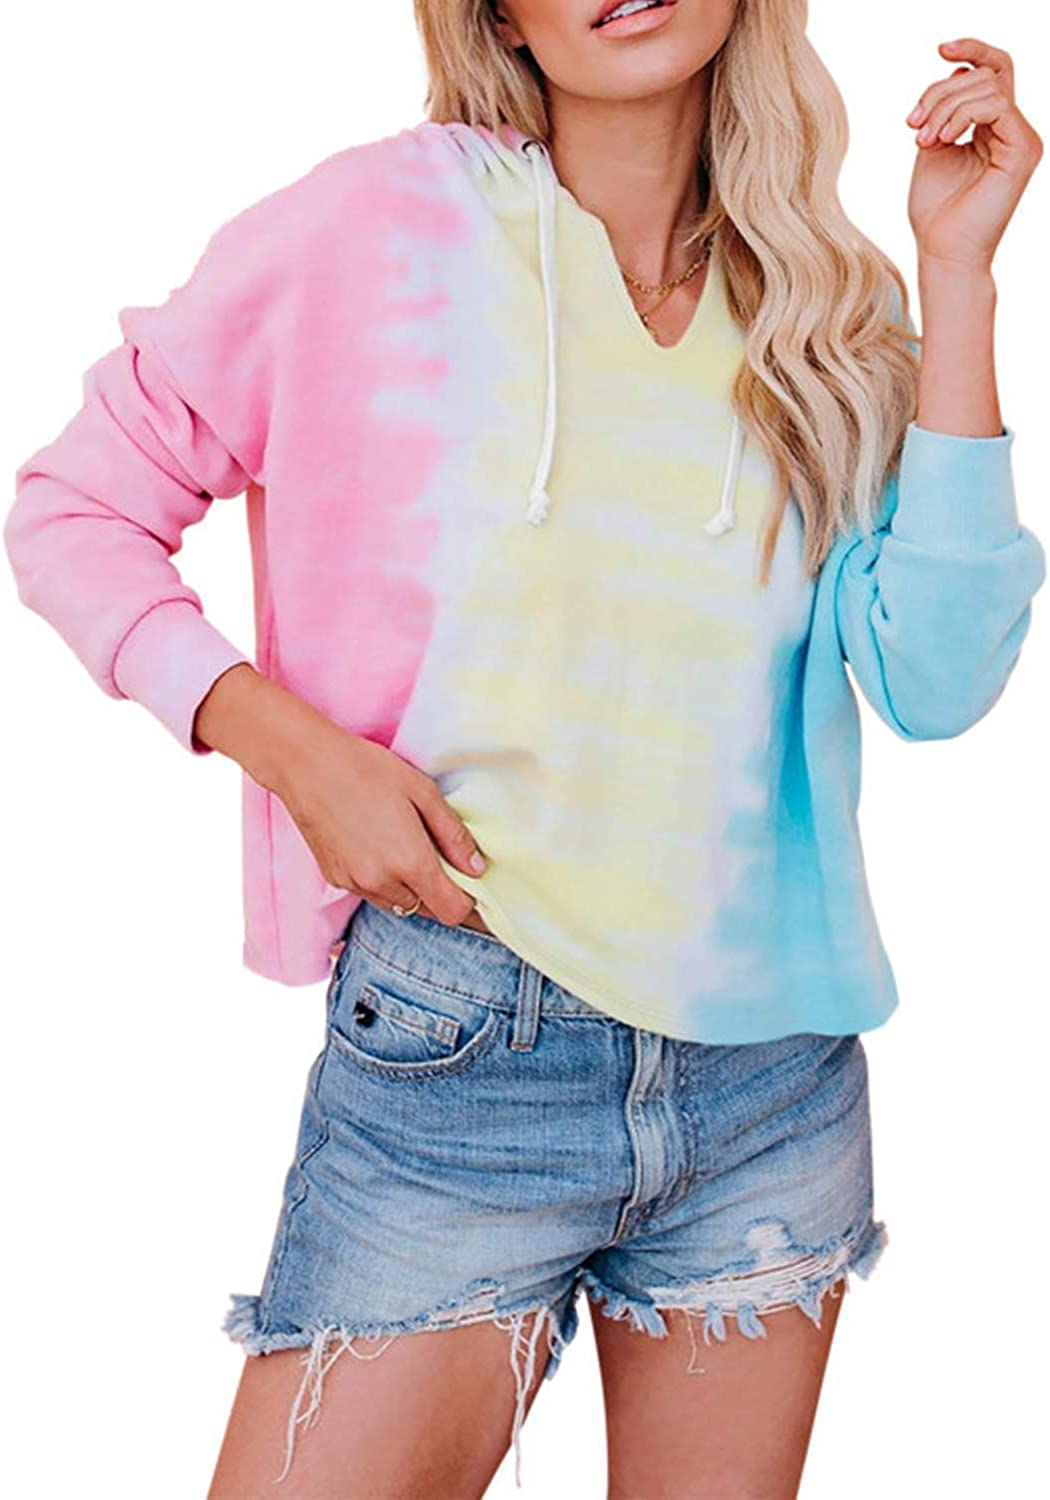 Magritta Womens Hoodies Shirts Casual Long Sleeve Sweatshirts Solid Tie Dye Floral Tops Pullover